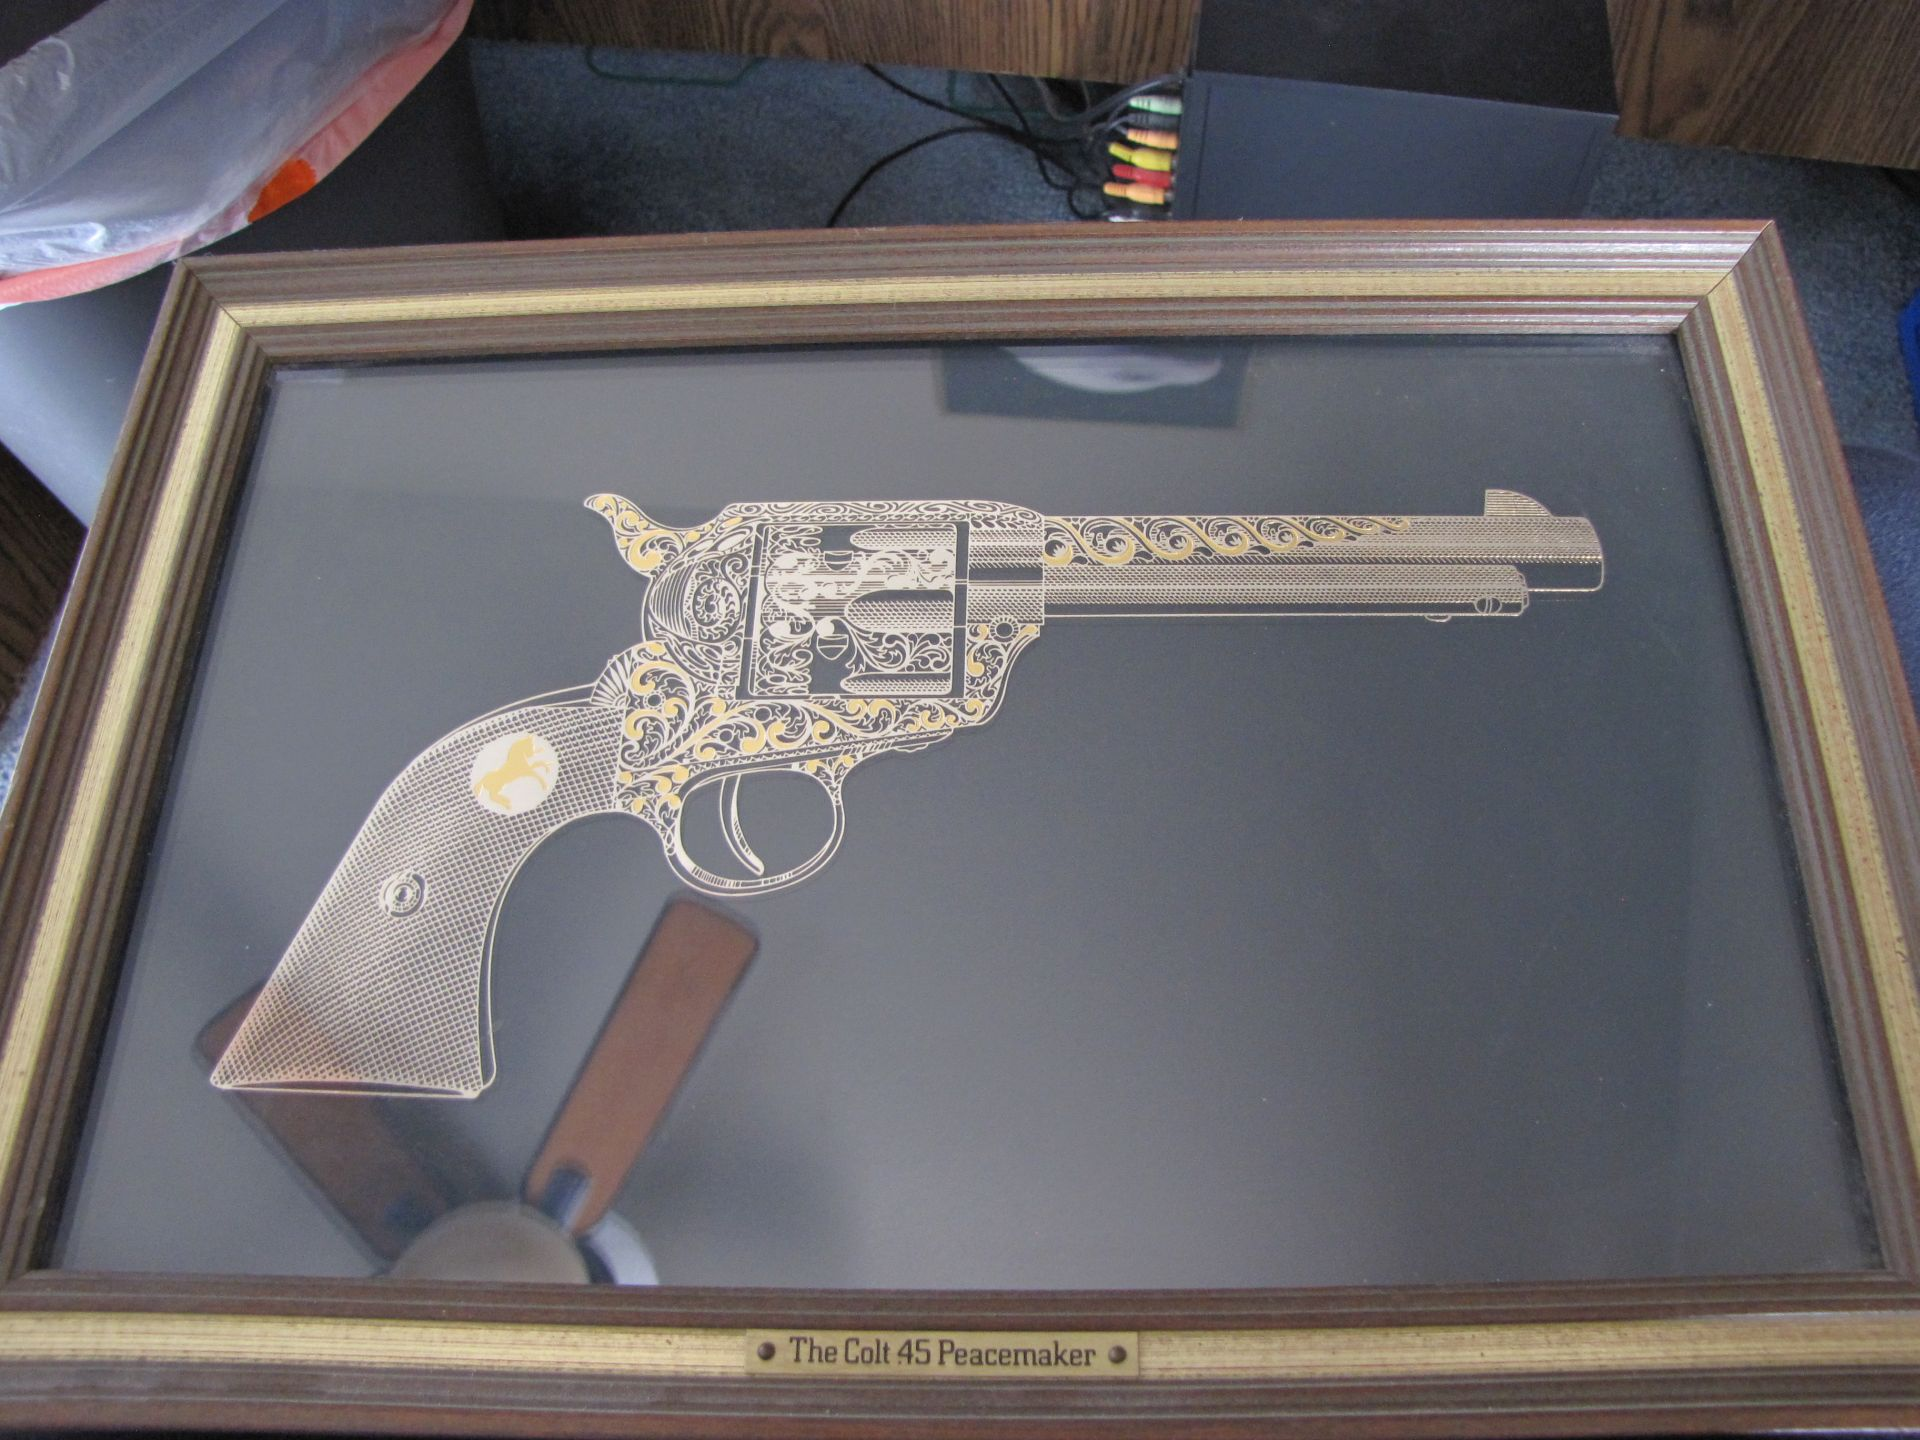 Colt Peacemaker Small.jpg